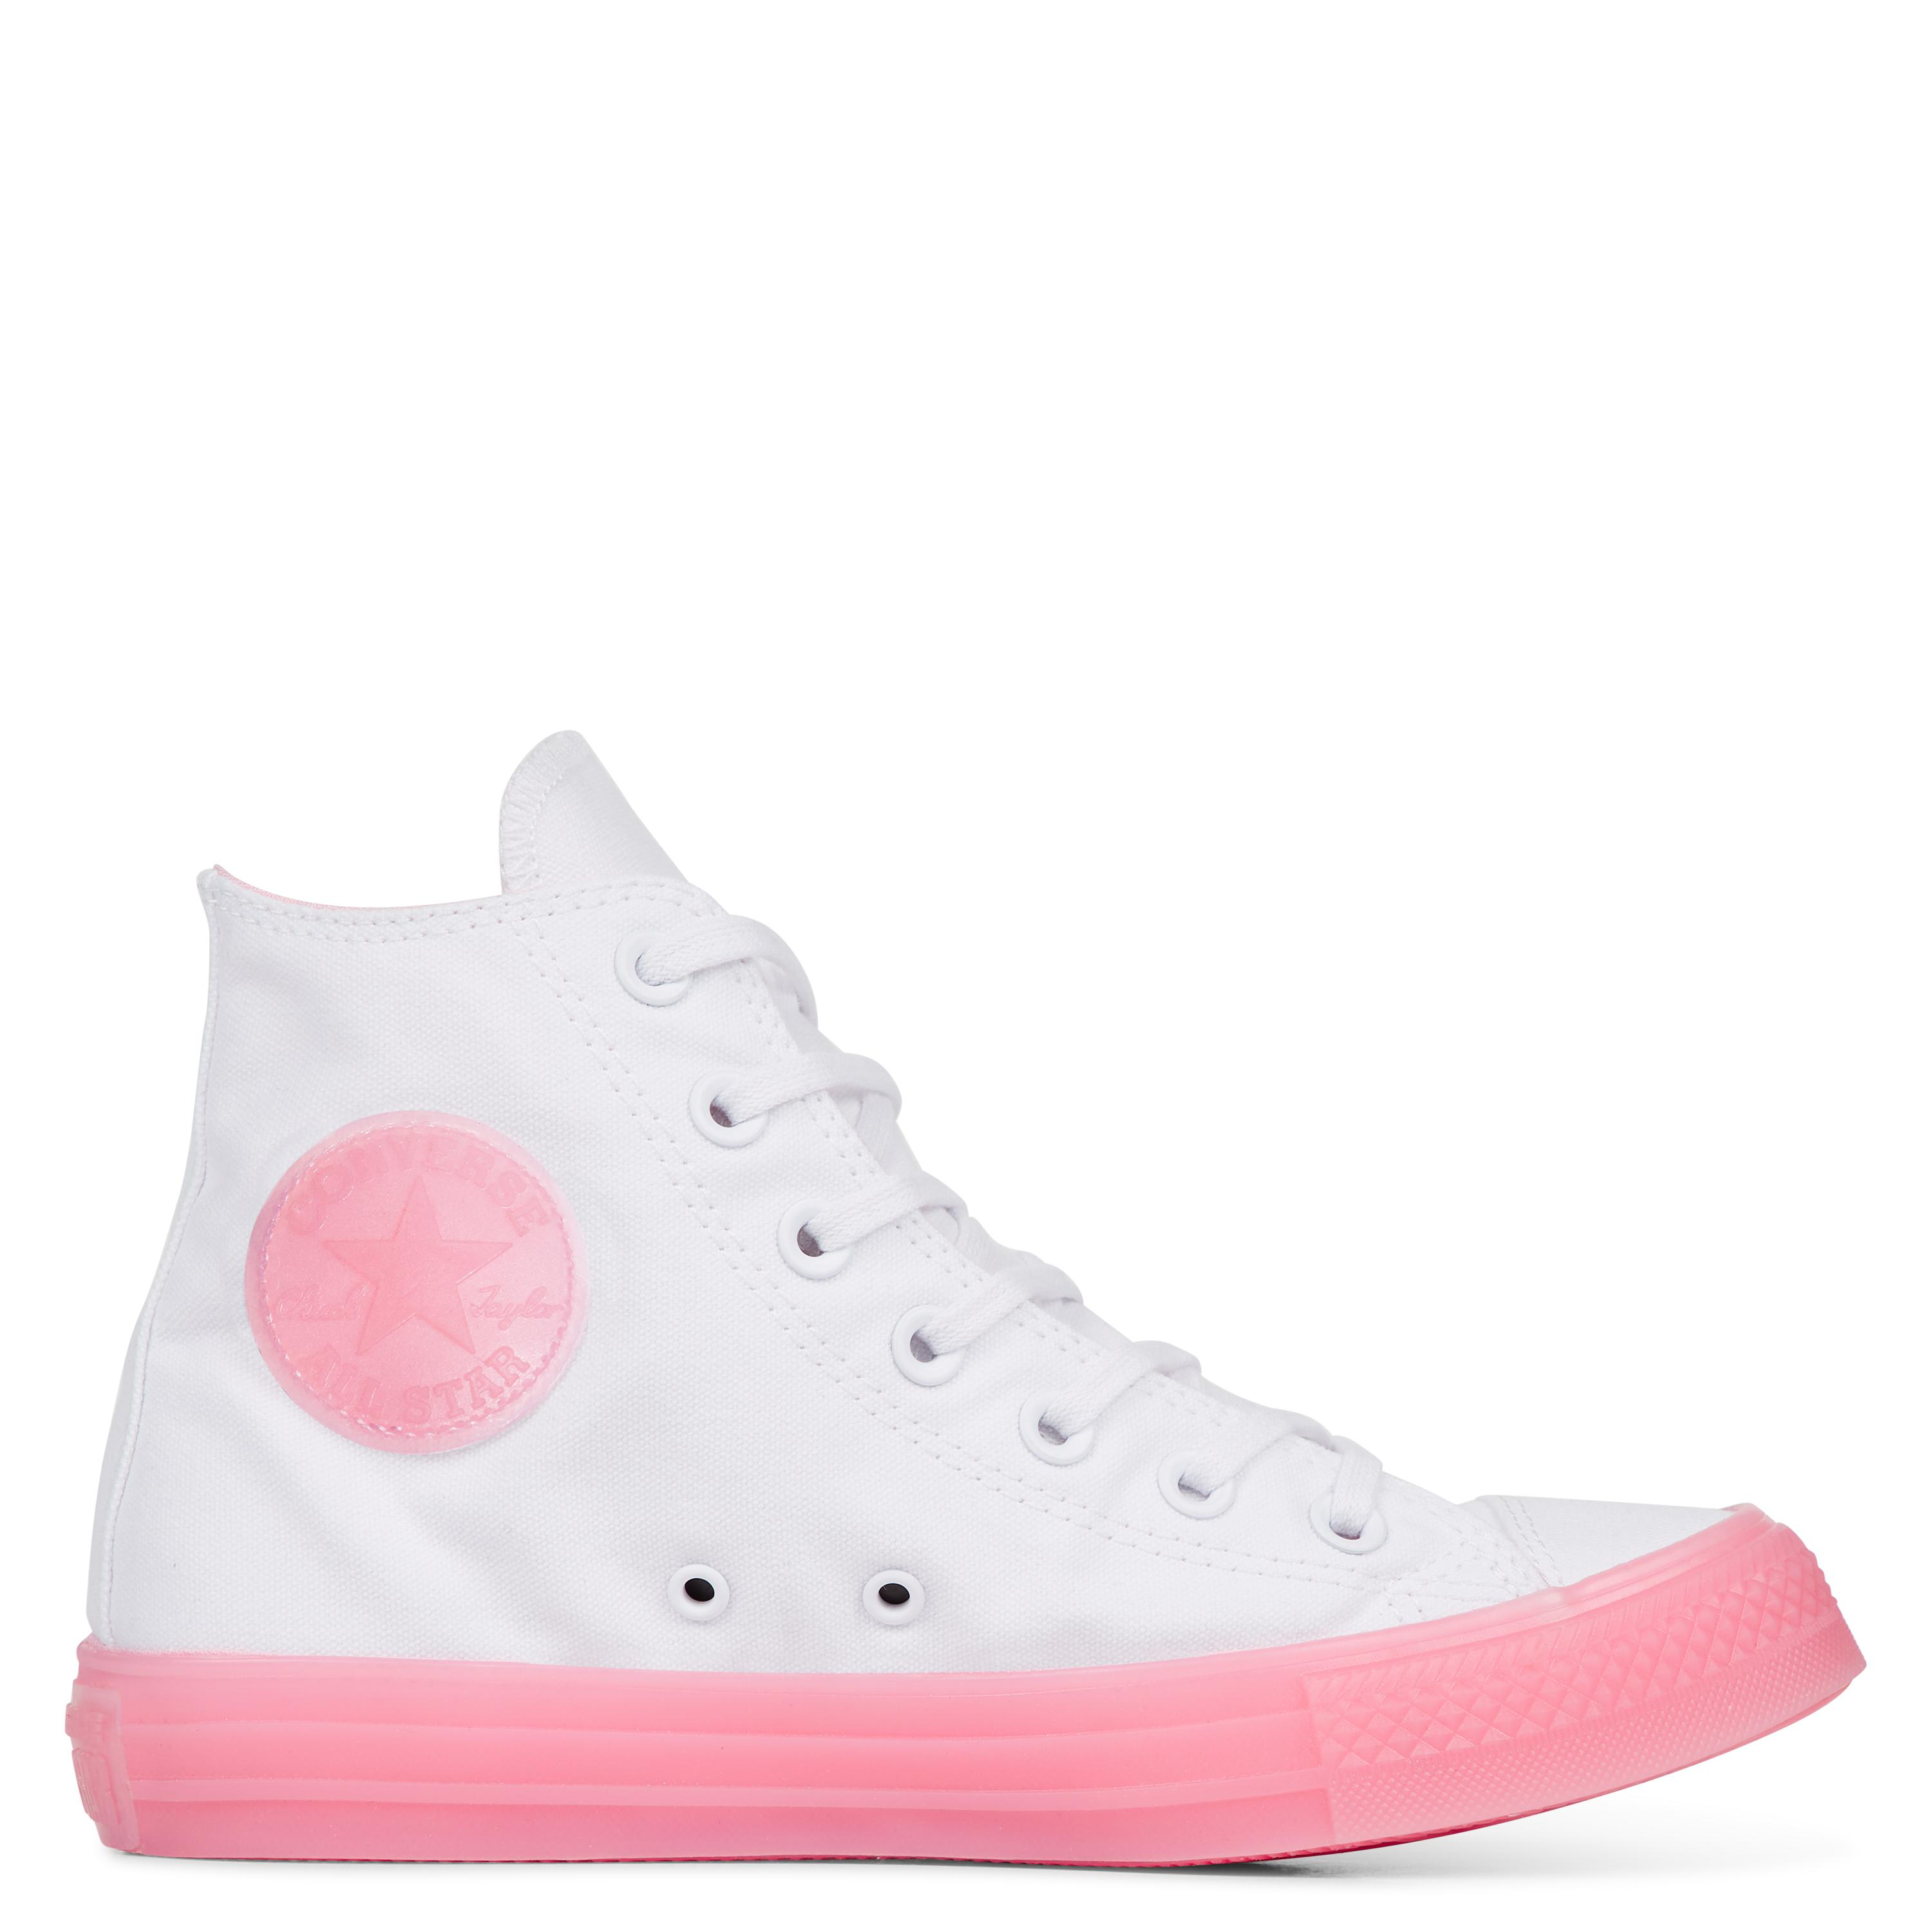 Converse Chuck Taylor All Star Candy Coated in White - Lyst 28499482a